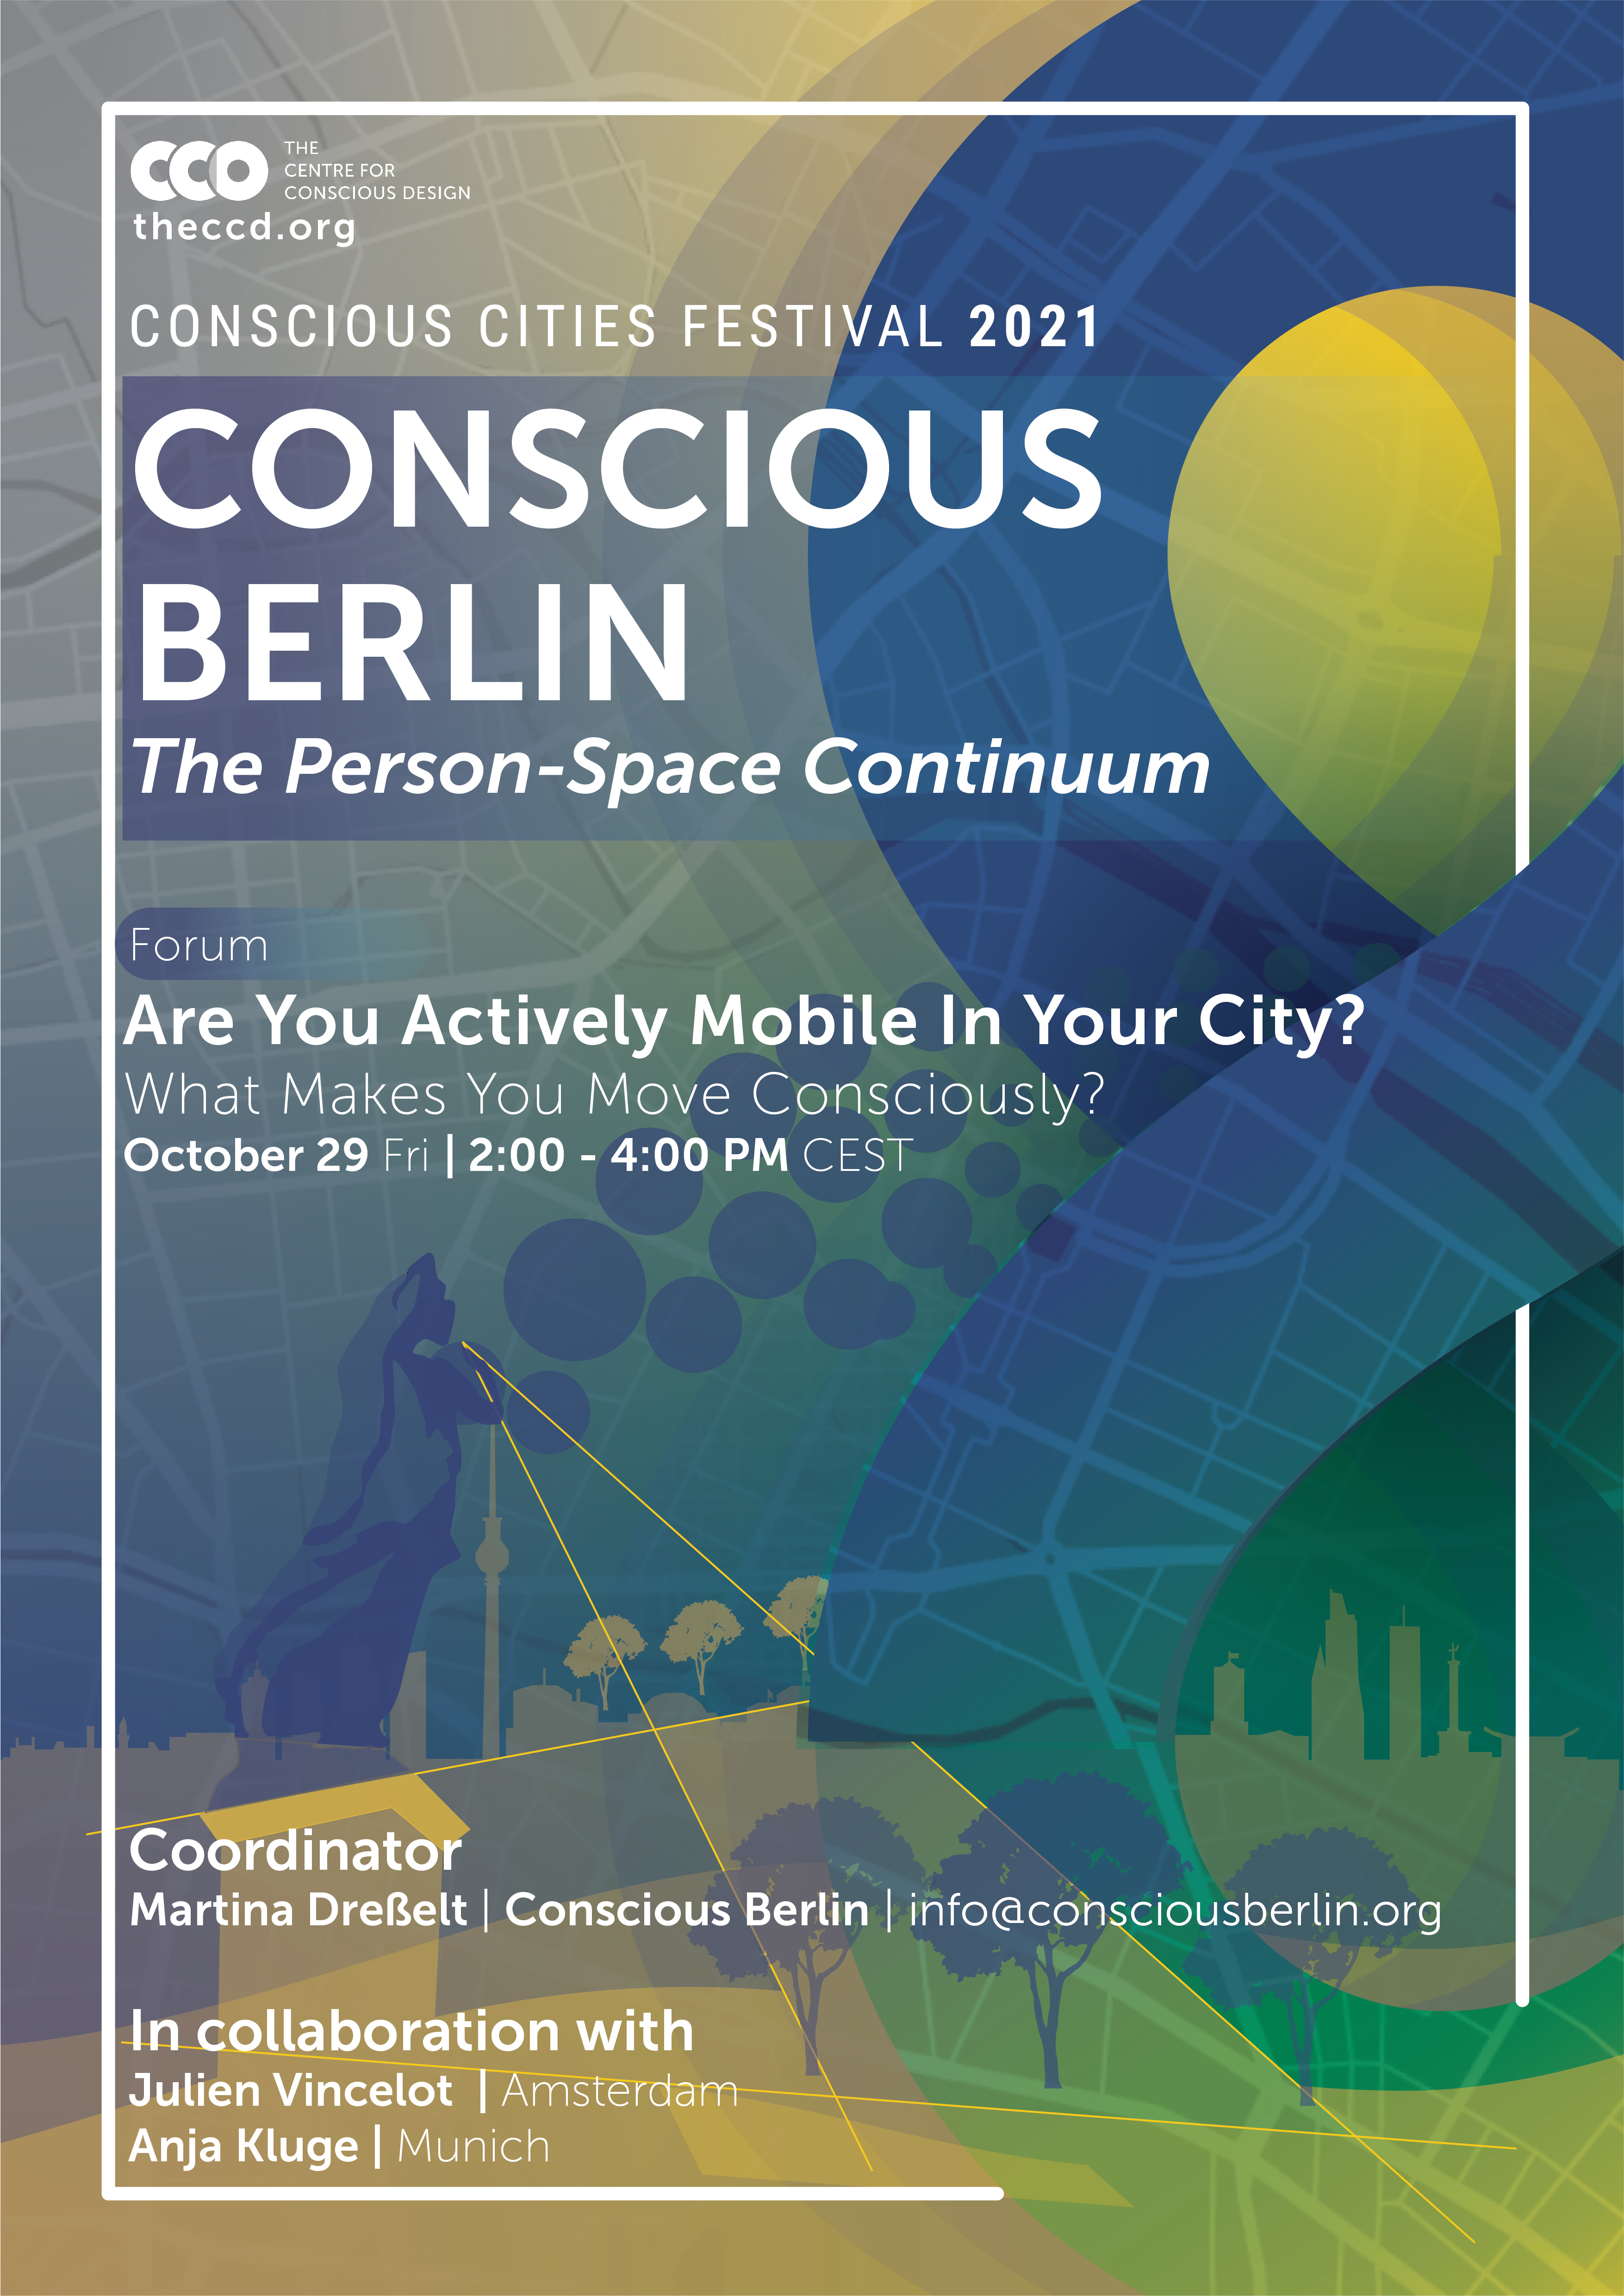 Are You Actively Mobile in Your City? What Makes You Move Consciously? featured Image